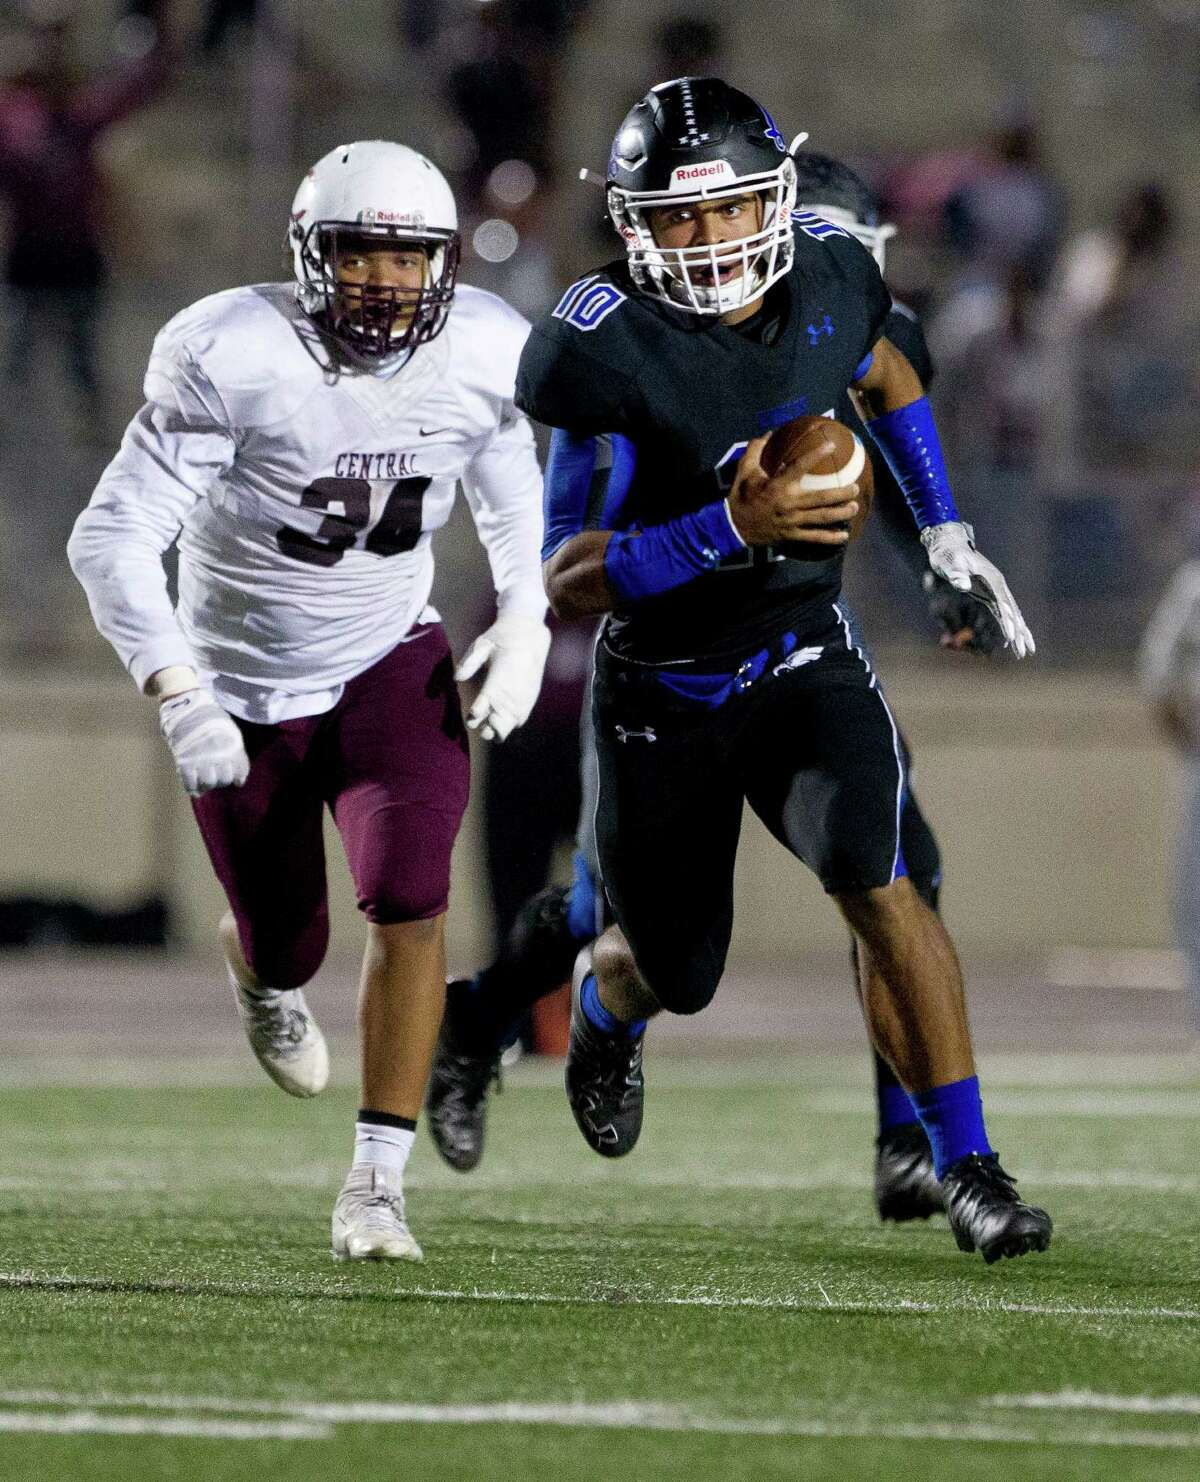 New Caney quarterback Jordan Cooper (10) runs for a first down during the third overtime period of a Region III-5A Division 1 bi-district high school football game at Turner Stadium Saturday, Nov. 12, 2016, in Humble. New Caney defeated Beaumont Central 31-28 in triple-overtime.